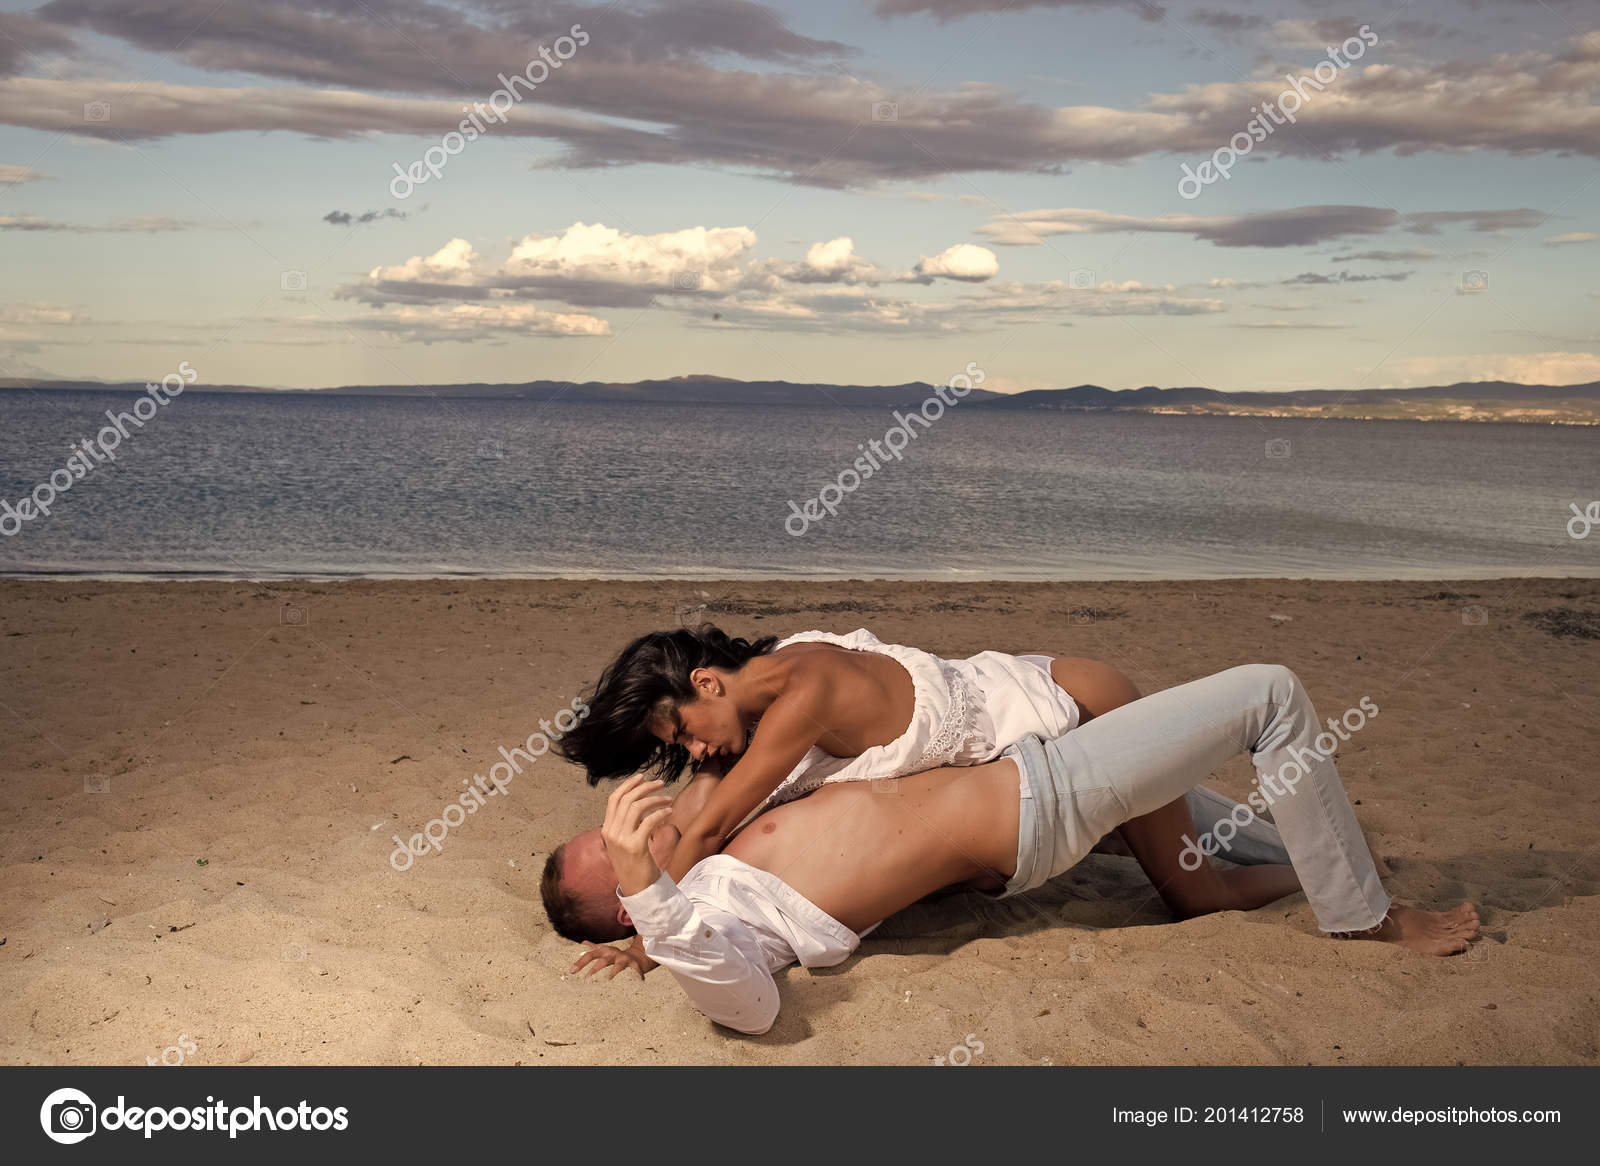 Fotos haciendo el amor en la playa [PUNIQRANDLINE-(au-dating-names.txt) 41